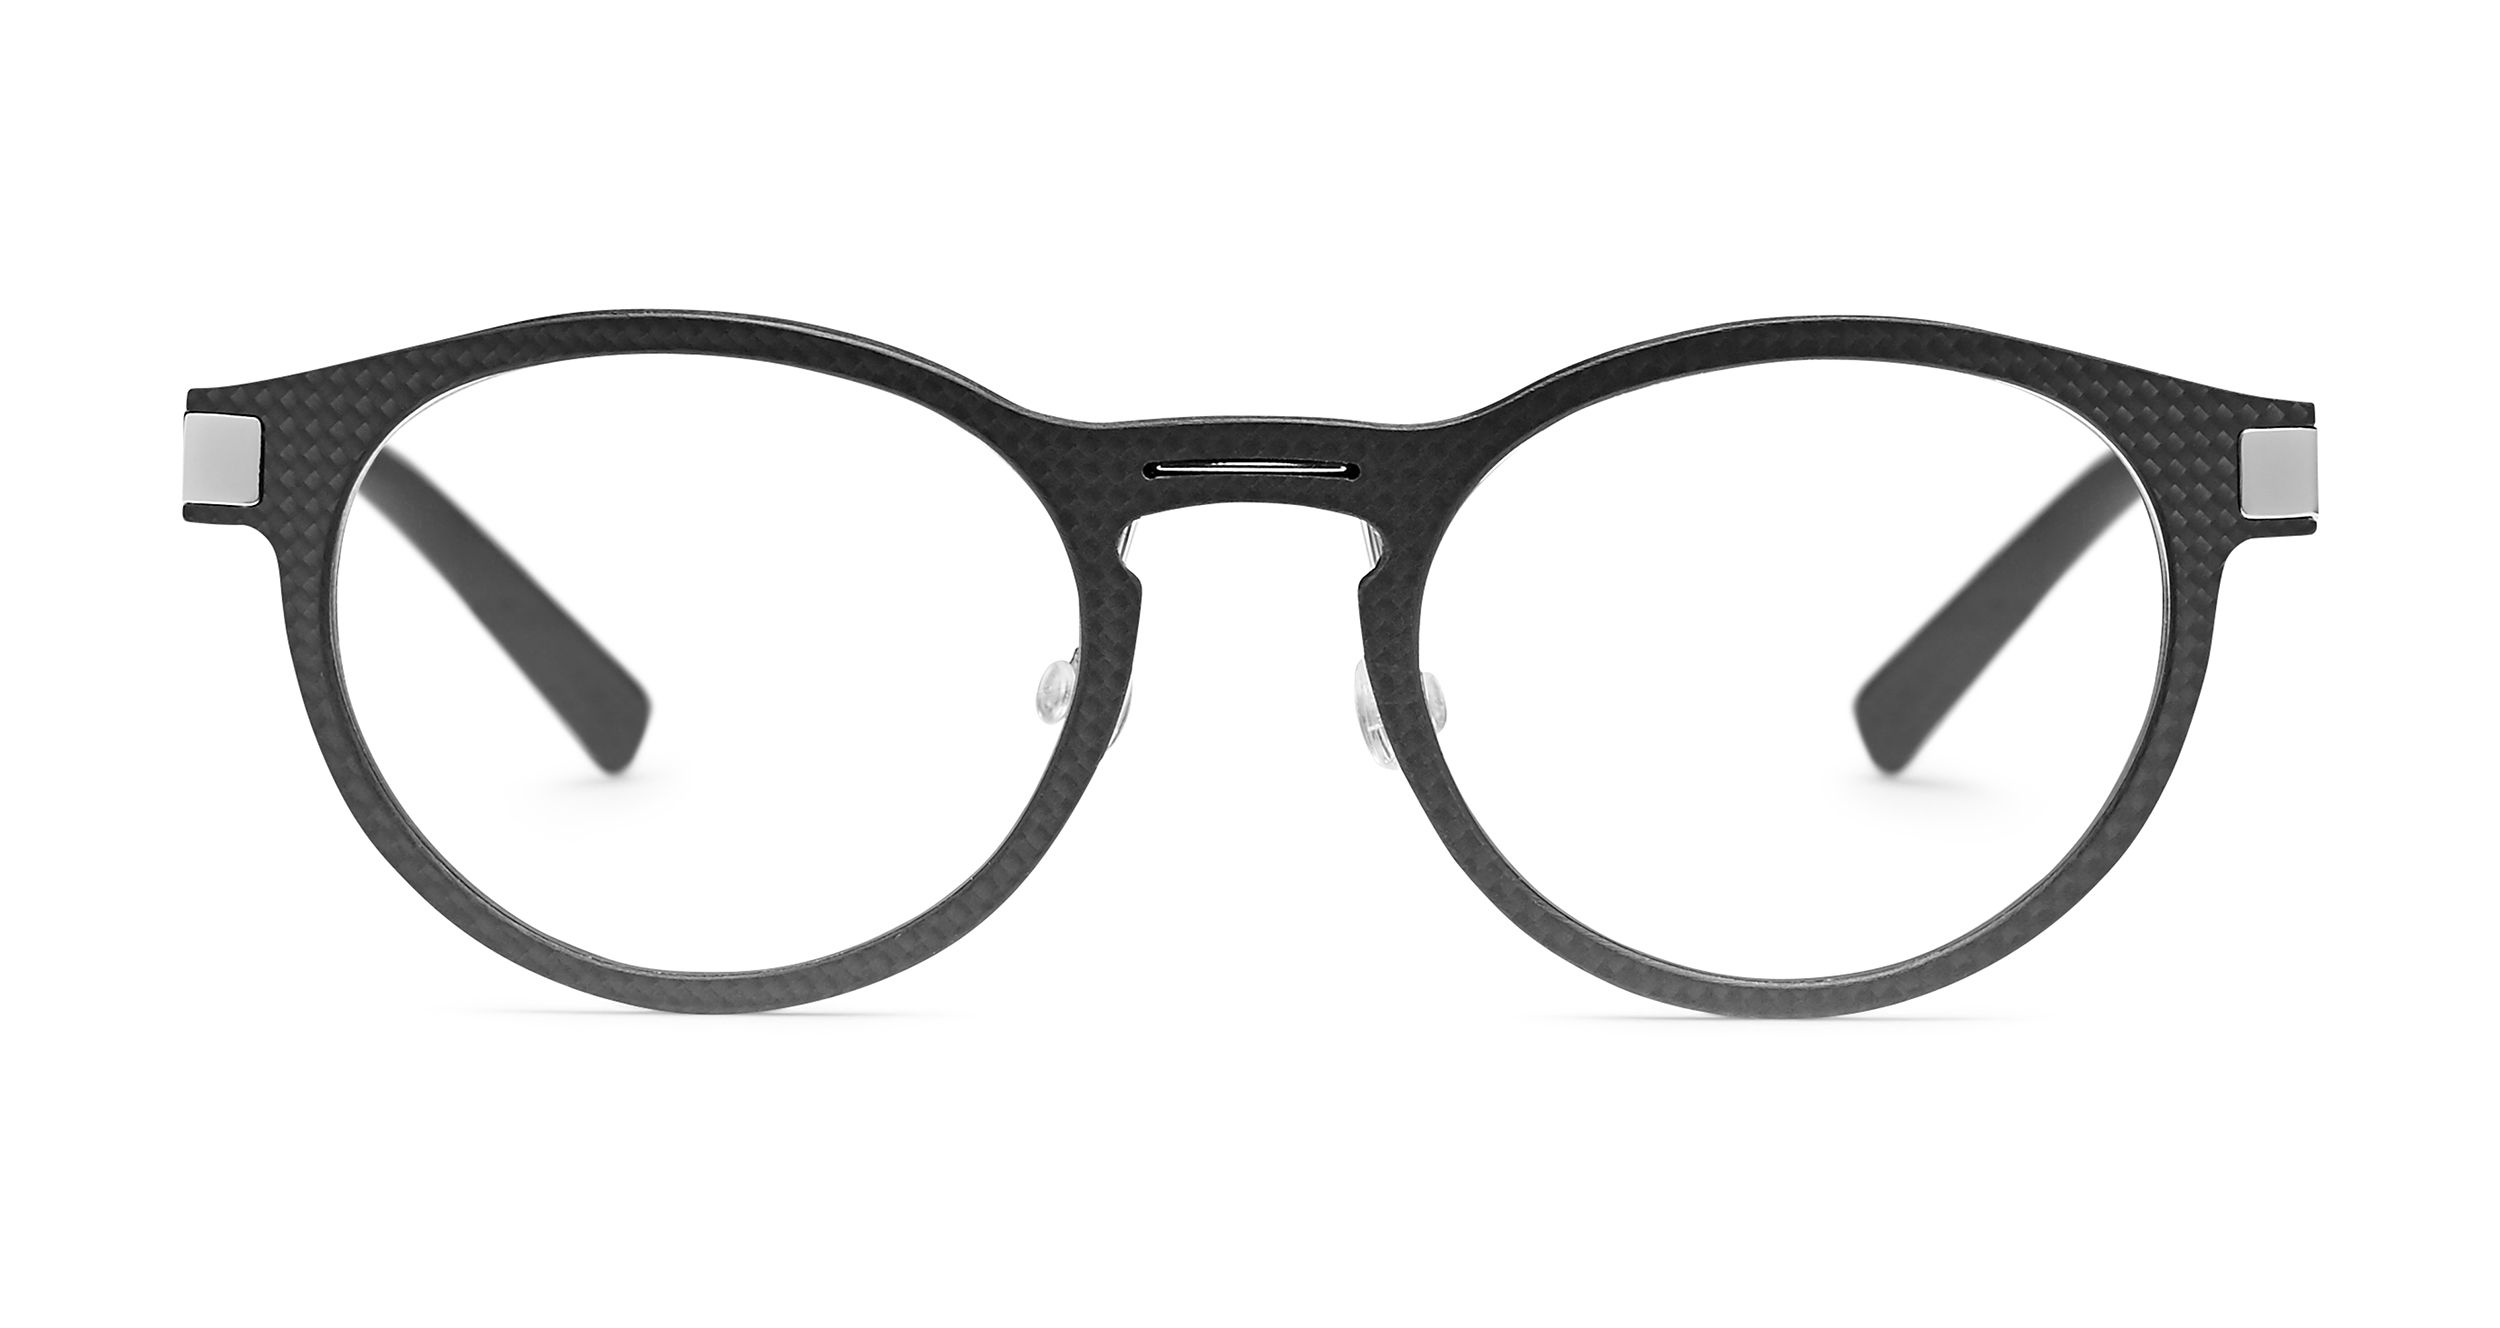 FLEYE | Lenni 4553 | The Carbon Collection | The Carbon Collection ...